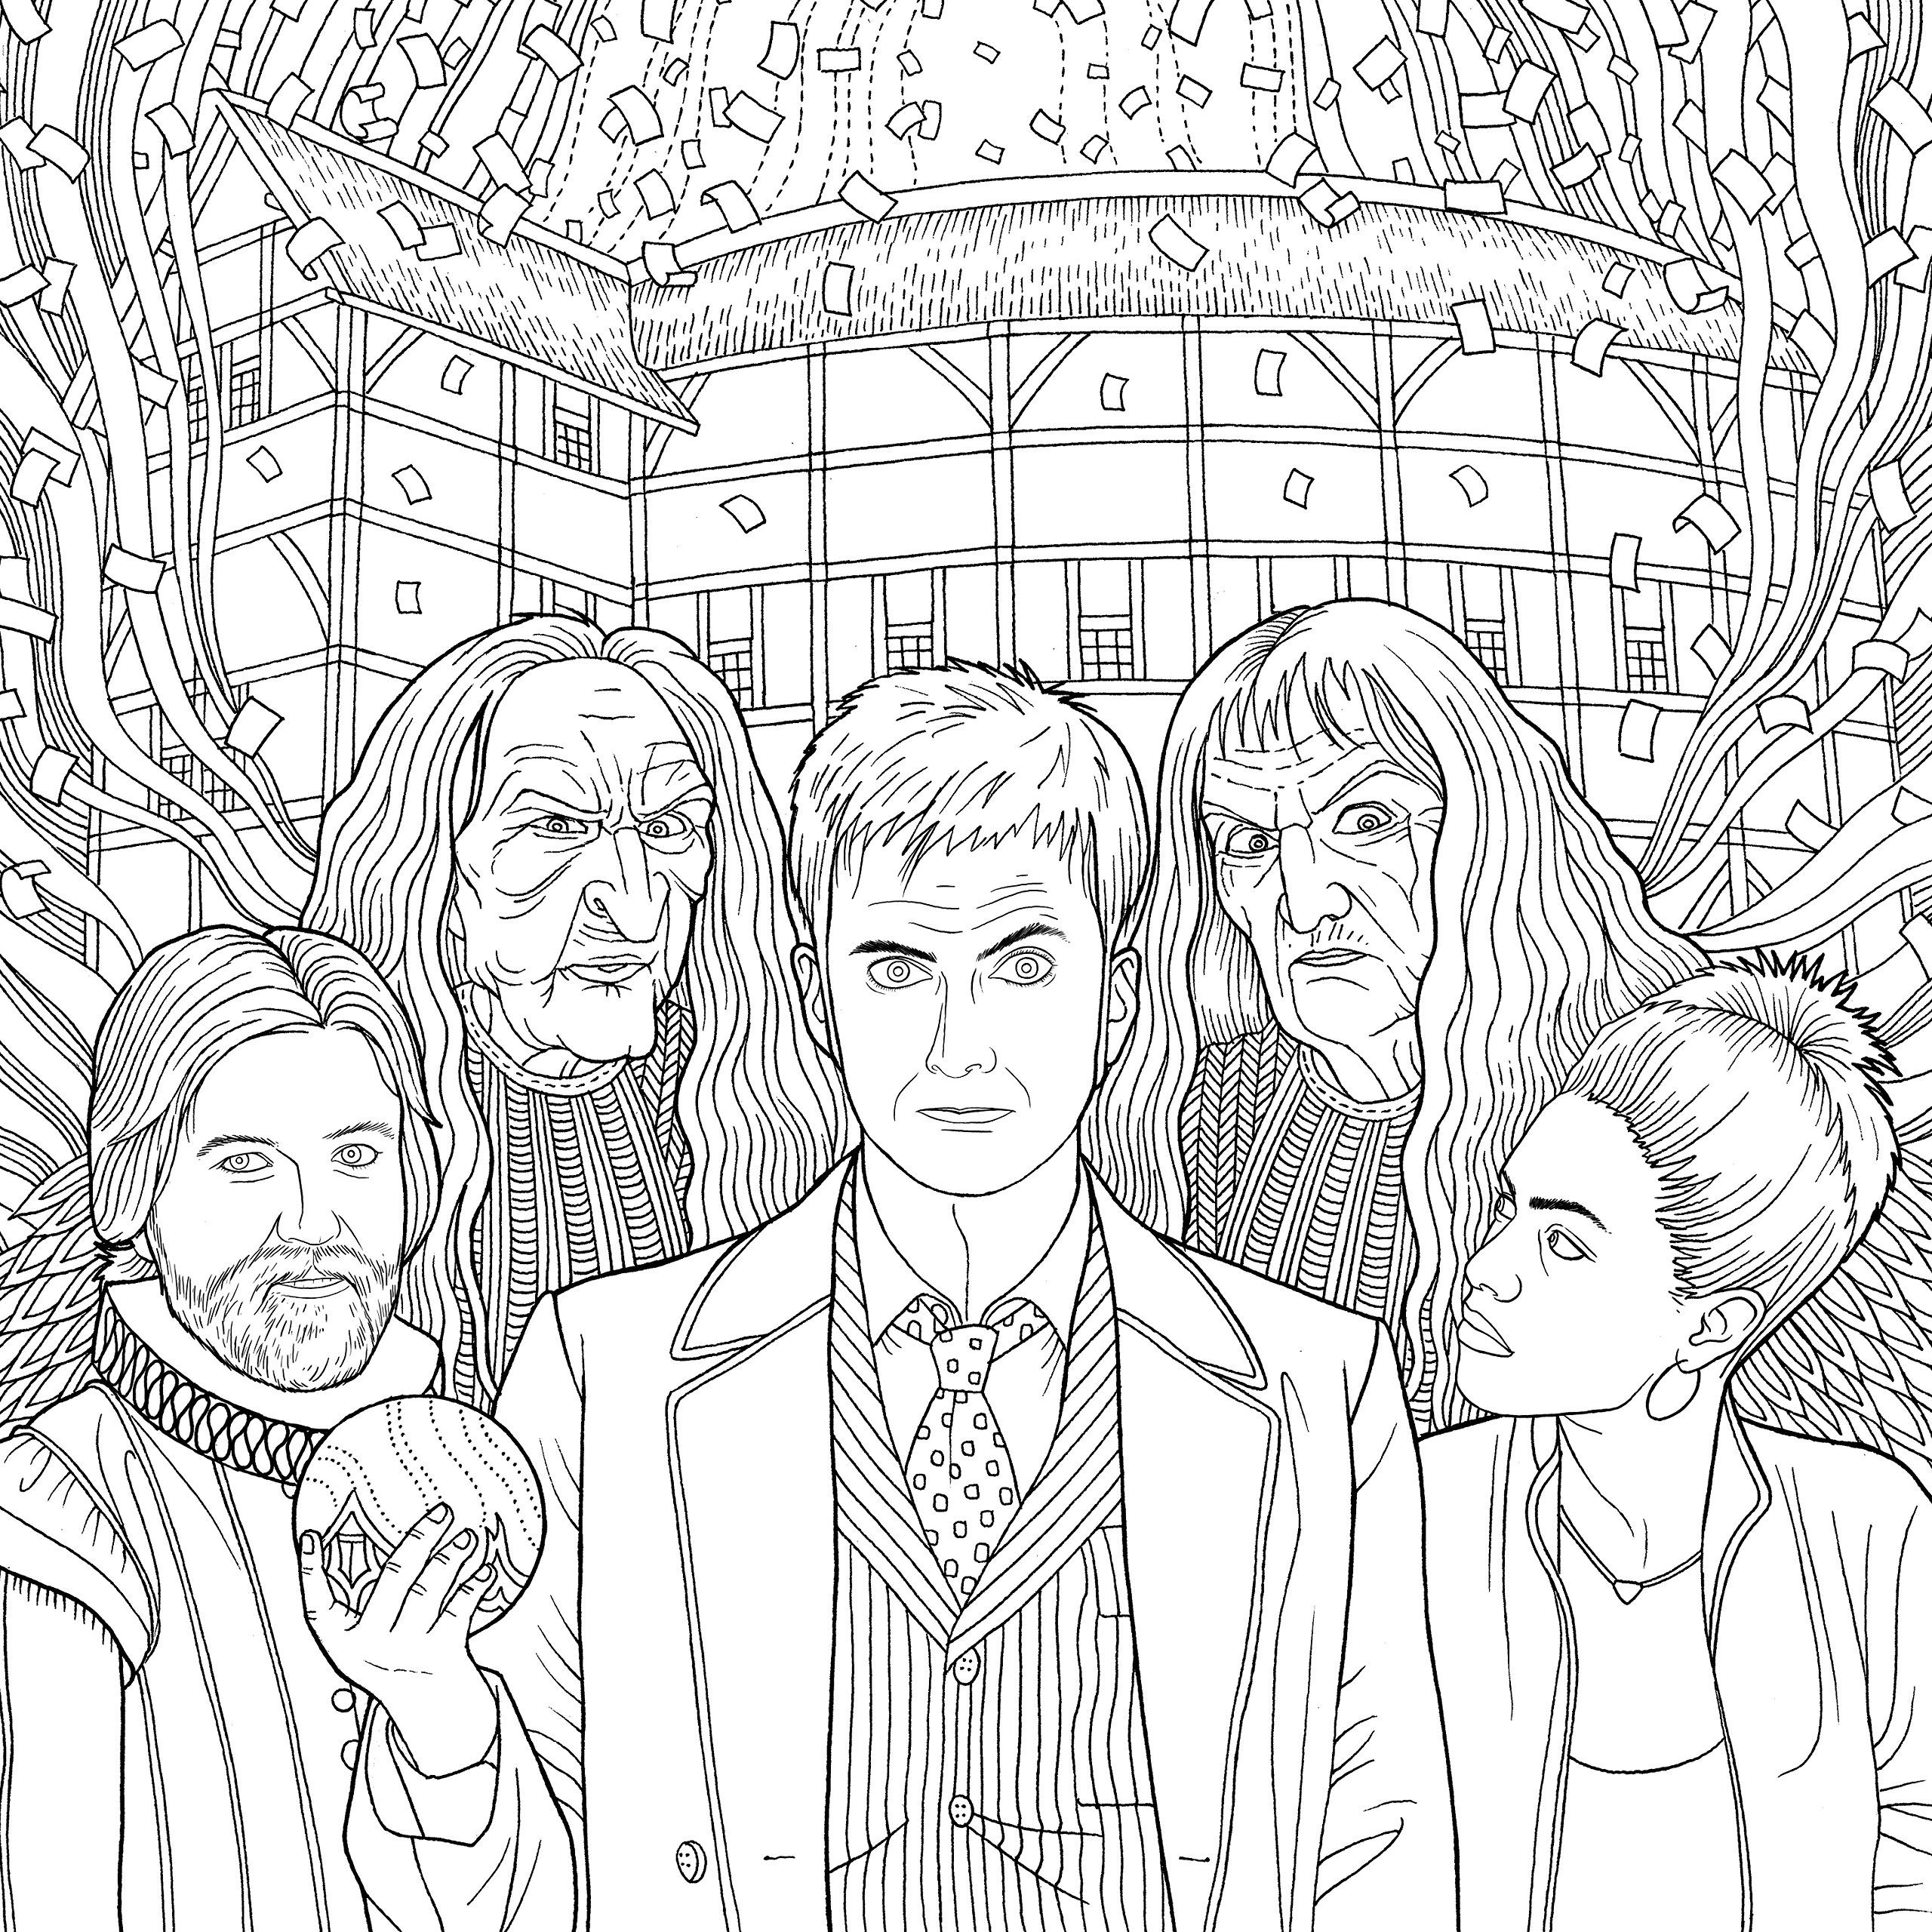 doctor who travels in time colouring book amazoncouk 9781405927260 - Doctor Who Coloring Book